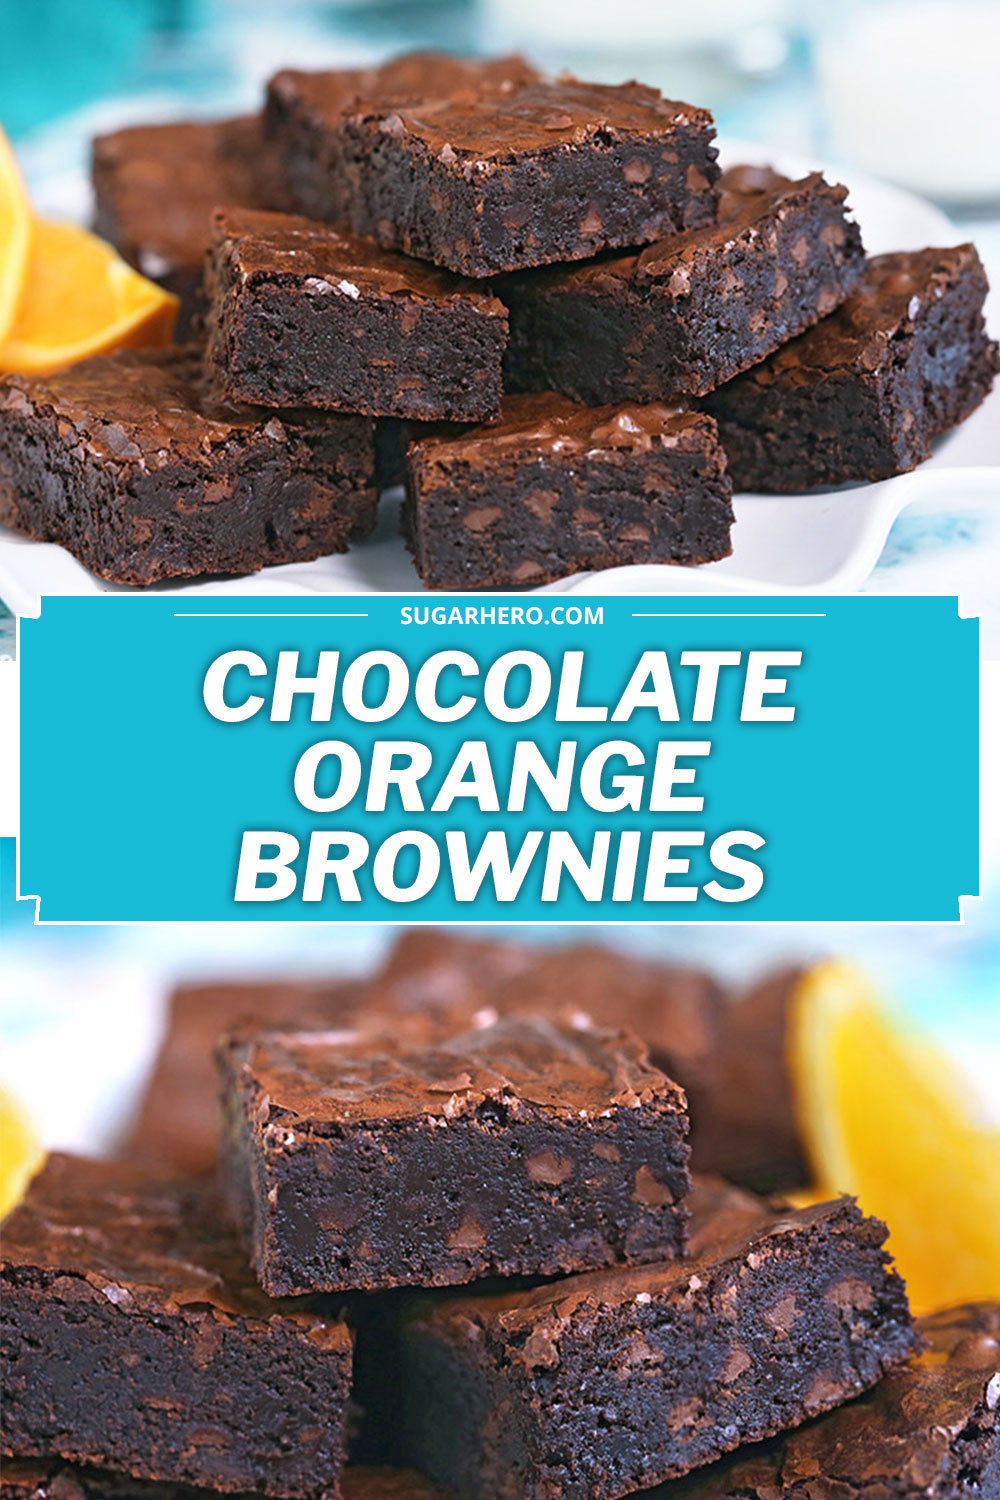 Pile of six chocolate orange brownies on a white plate.